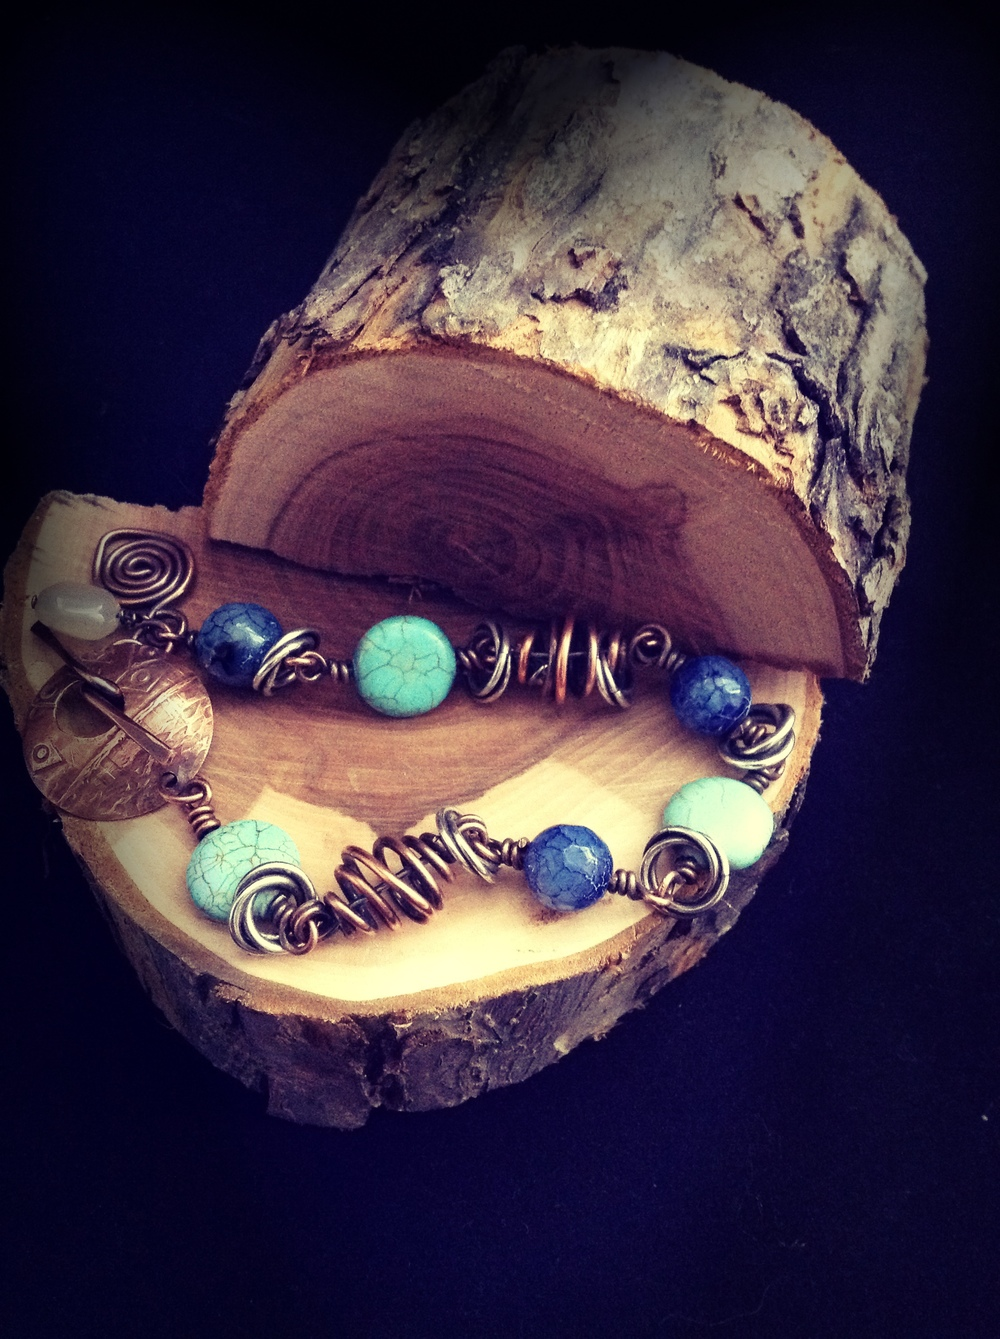 B 2 - J'Adore Handcrafted Jewelry                  Michelle Broneske Rustic jewelry designs with a contemporary flare.  Gemstones, leather, metal, and traditional sting